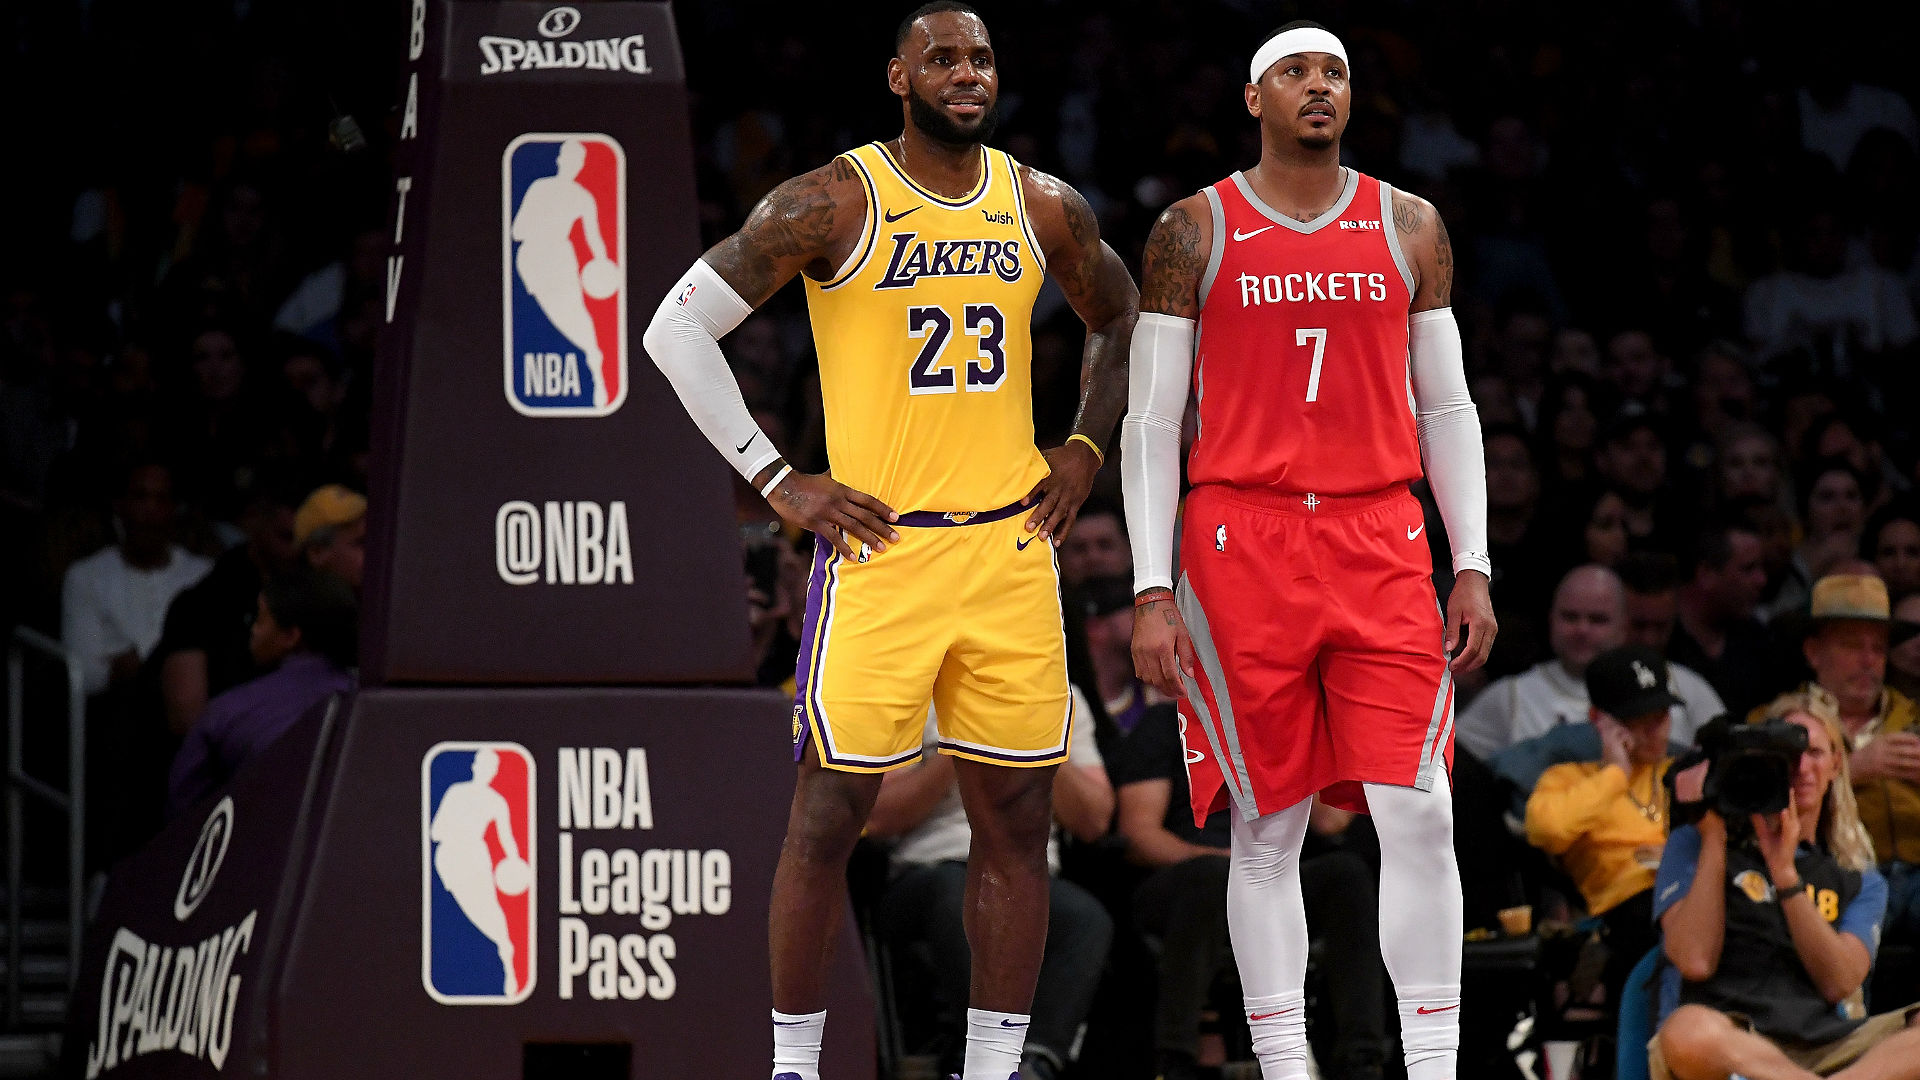 Kyle Kuzma Savages LeBron James on Twitter for Being Old